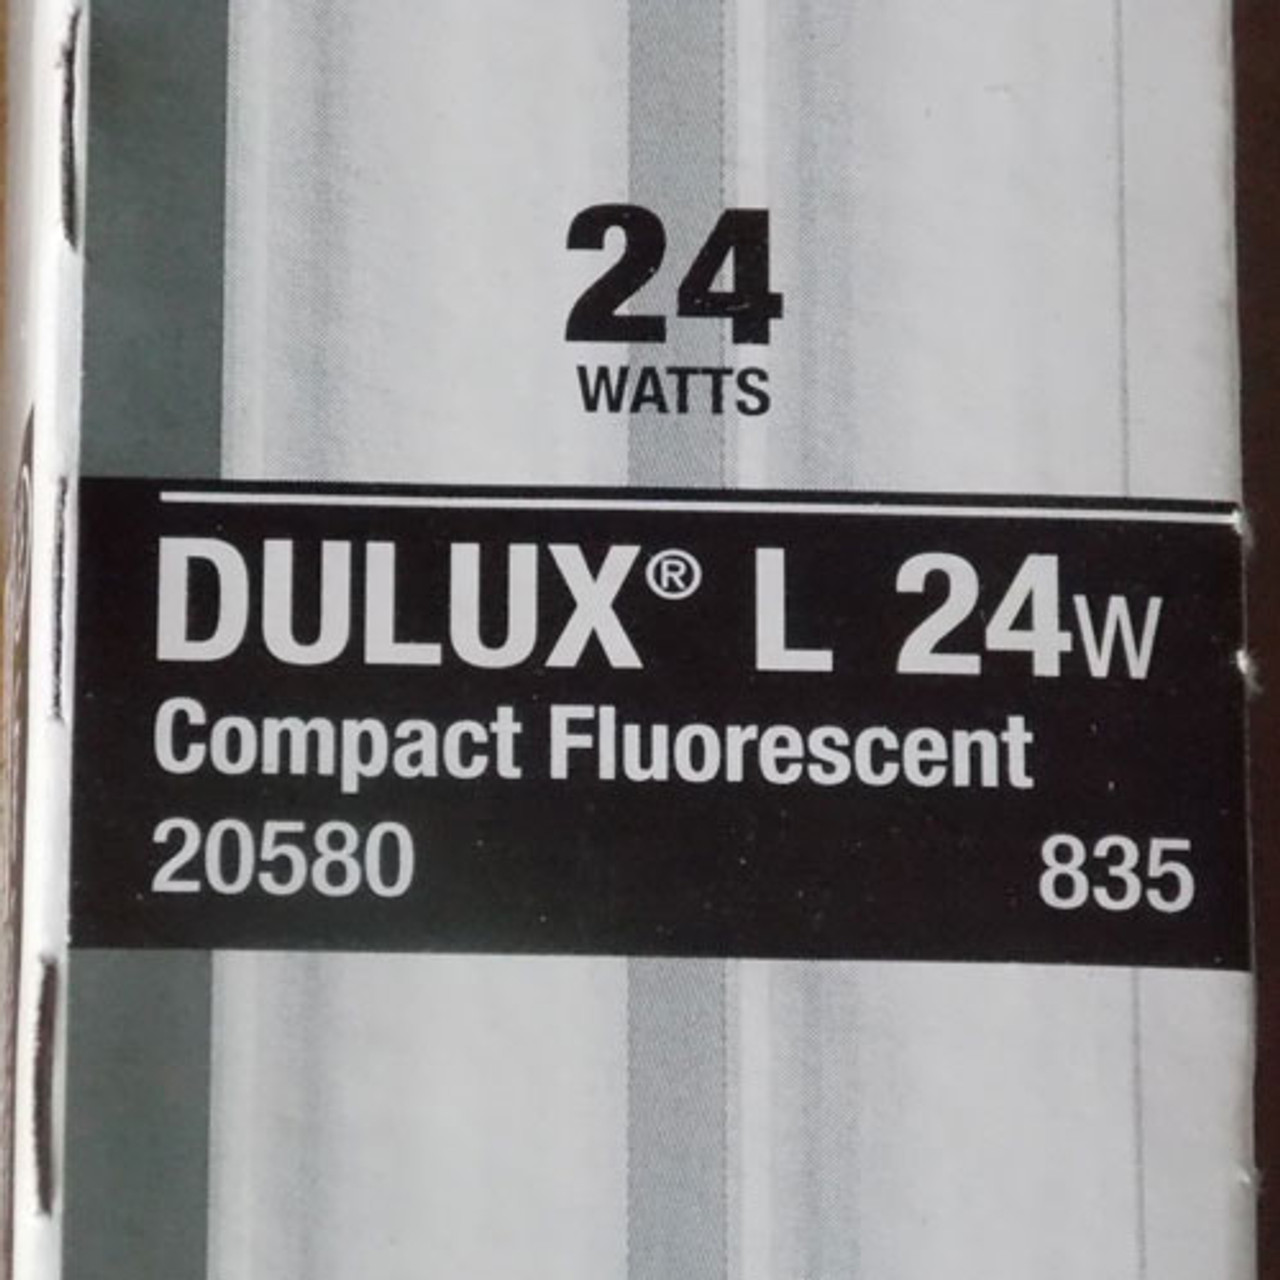 "Sylvania FT24DL/835 Dulux 24W Compact Fluorescent 2G11 4 Pin 12"", Lot of 2 - New"